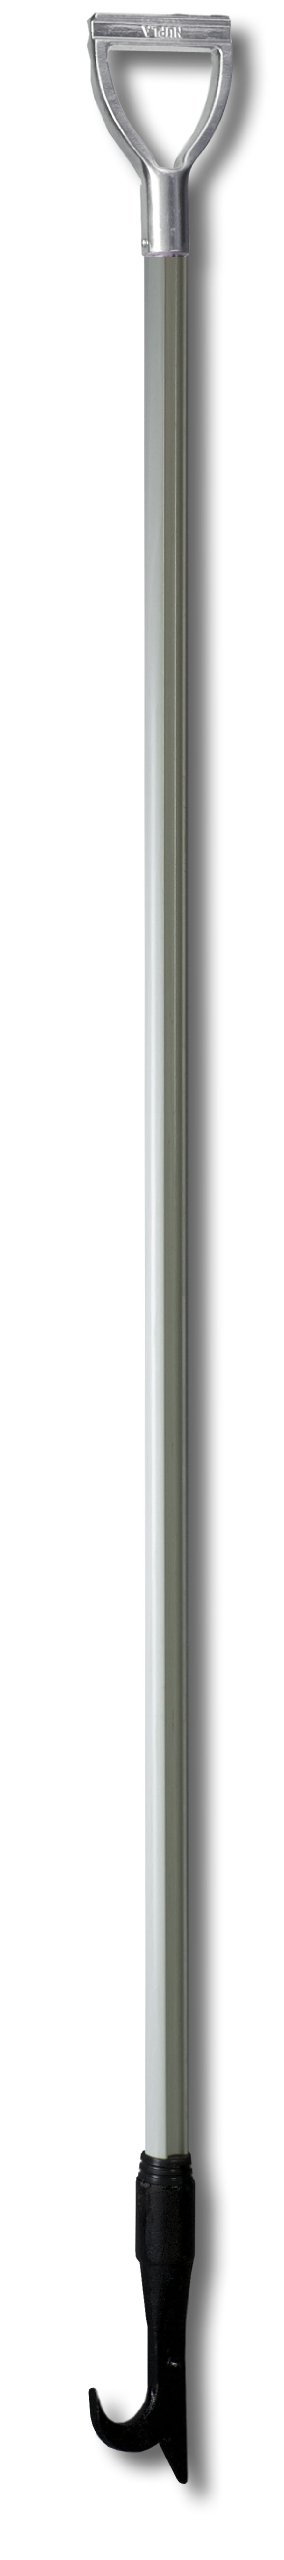 Nupla SPDH-5A Super Duty I-Beam Pike Pole with Aluminum D Grip, 5' Length